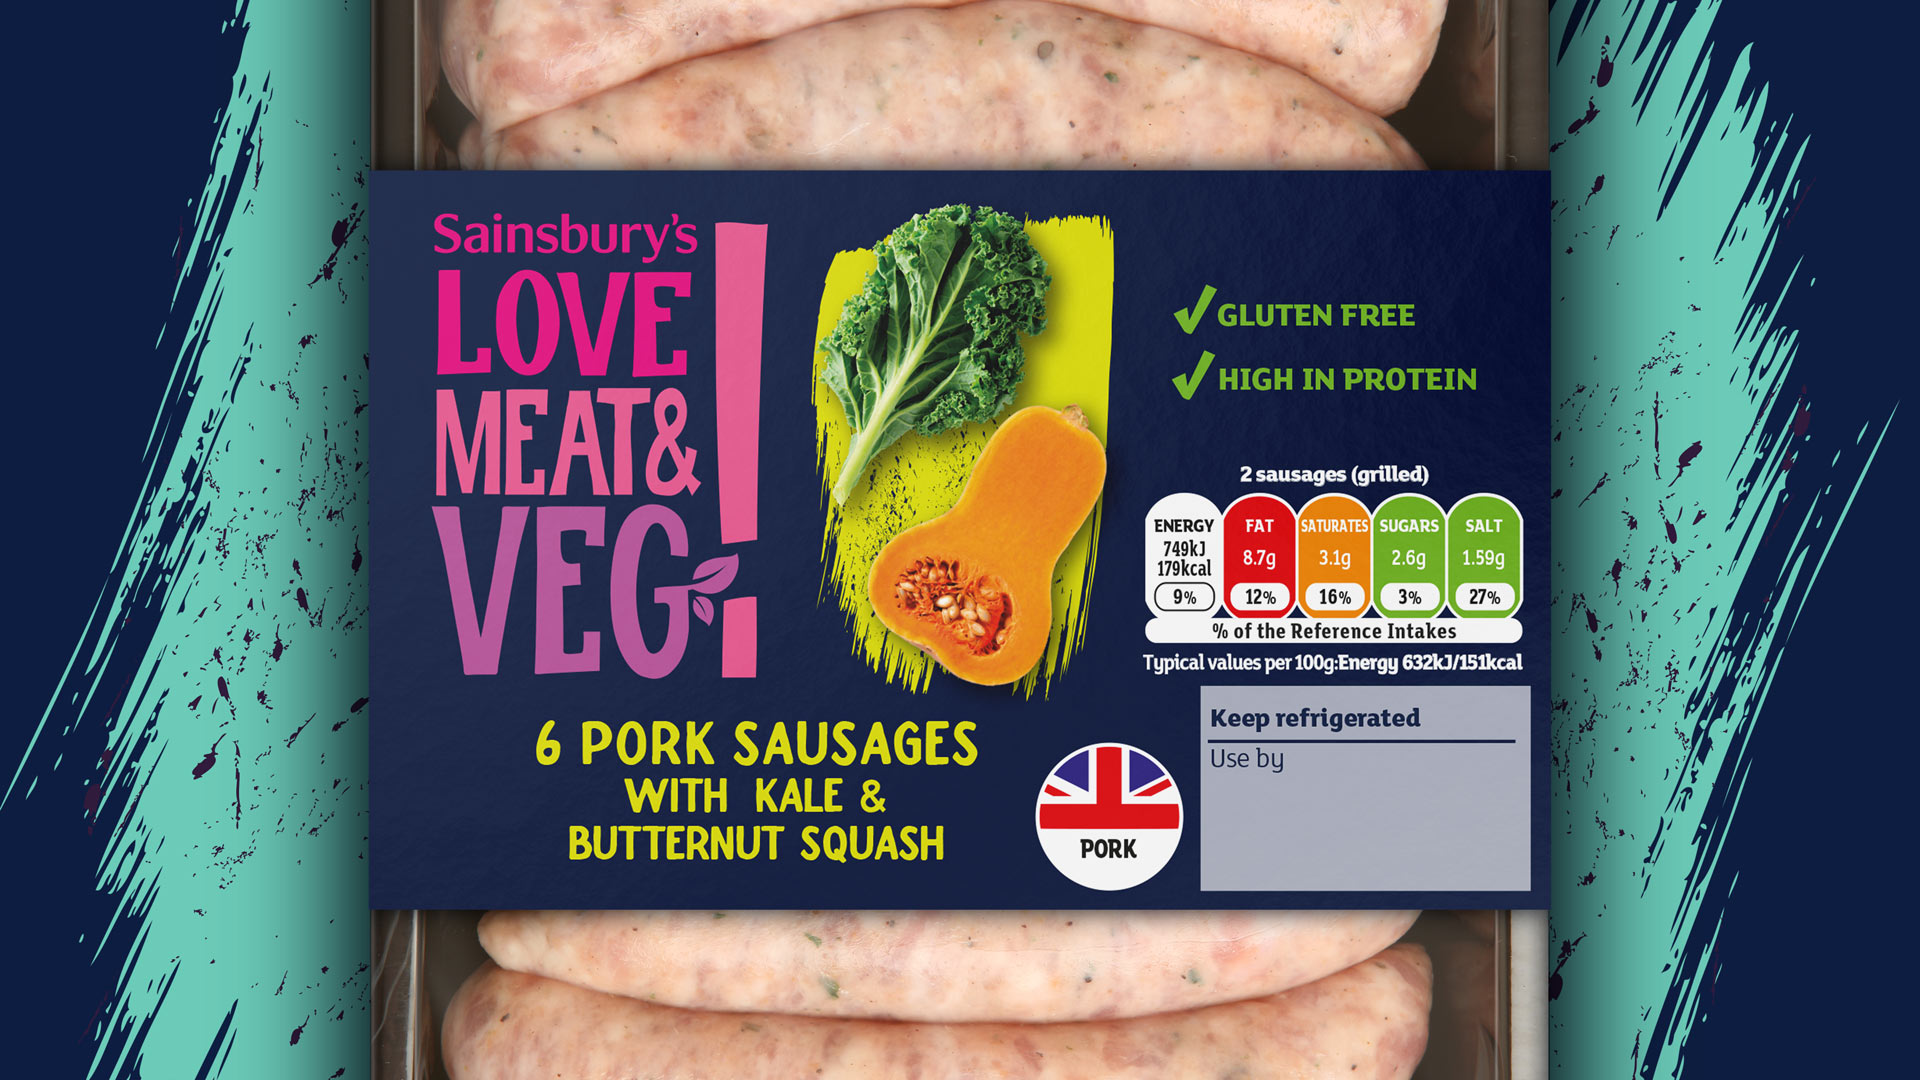 Sainsbury's Pork Sausages with kale & butternut squash